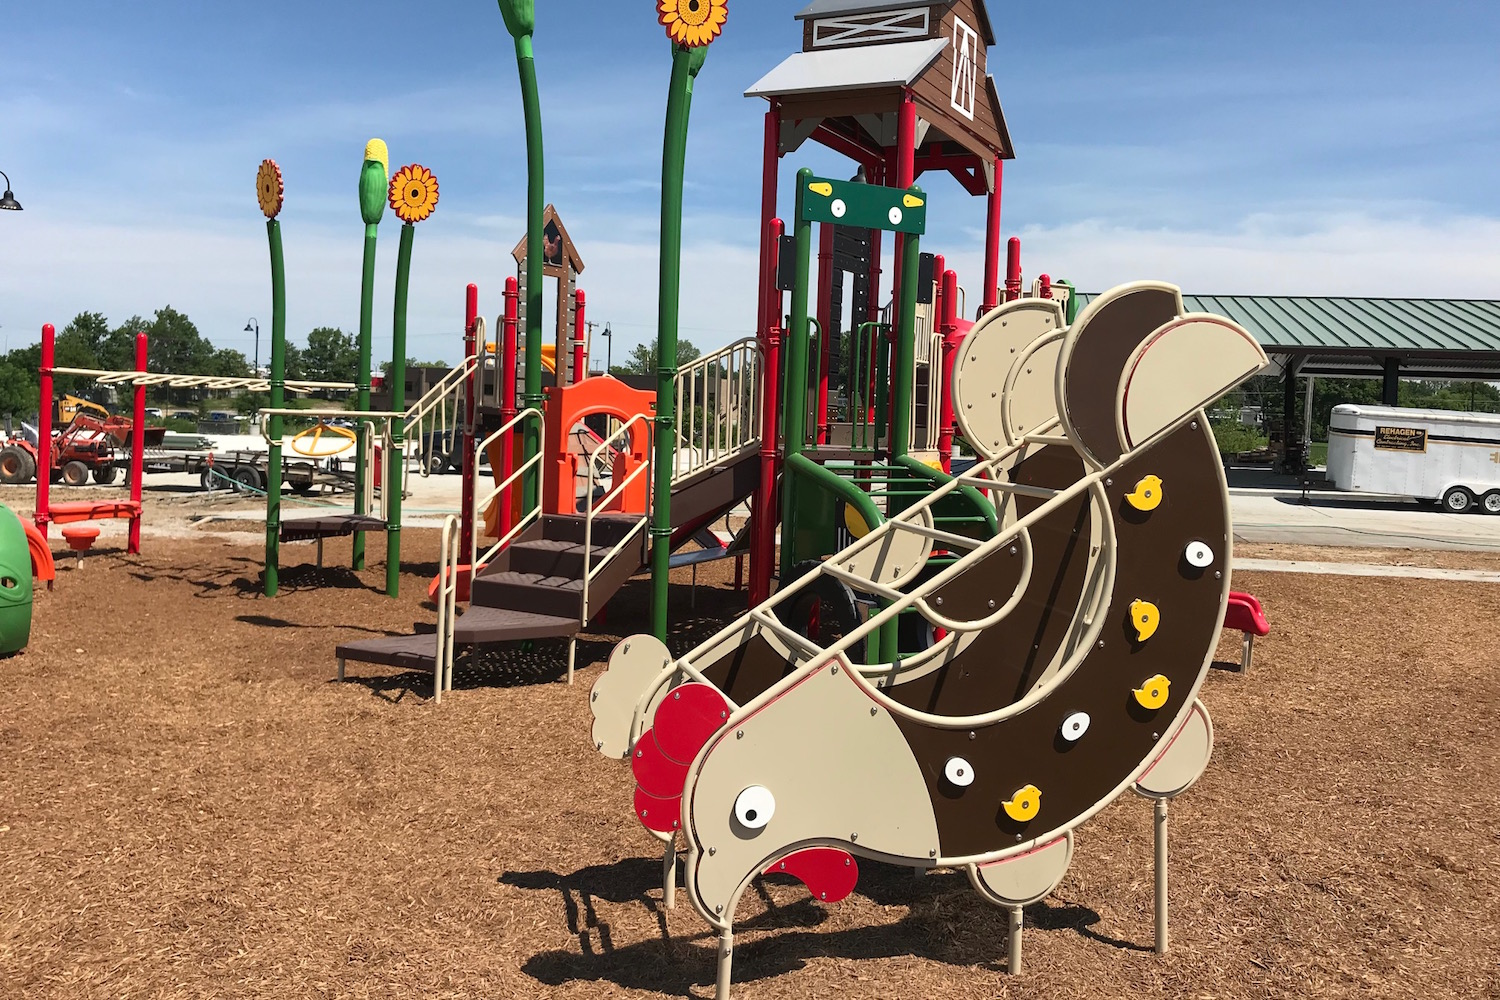 Rooster-shaped glider on a playground